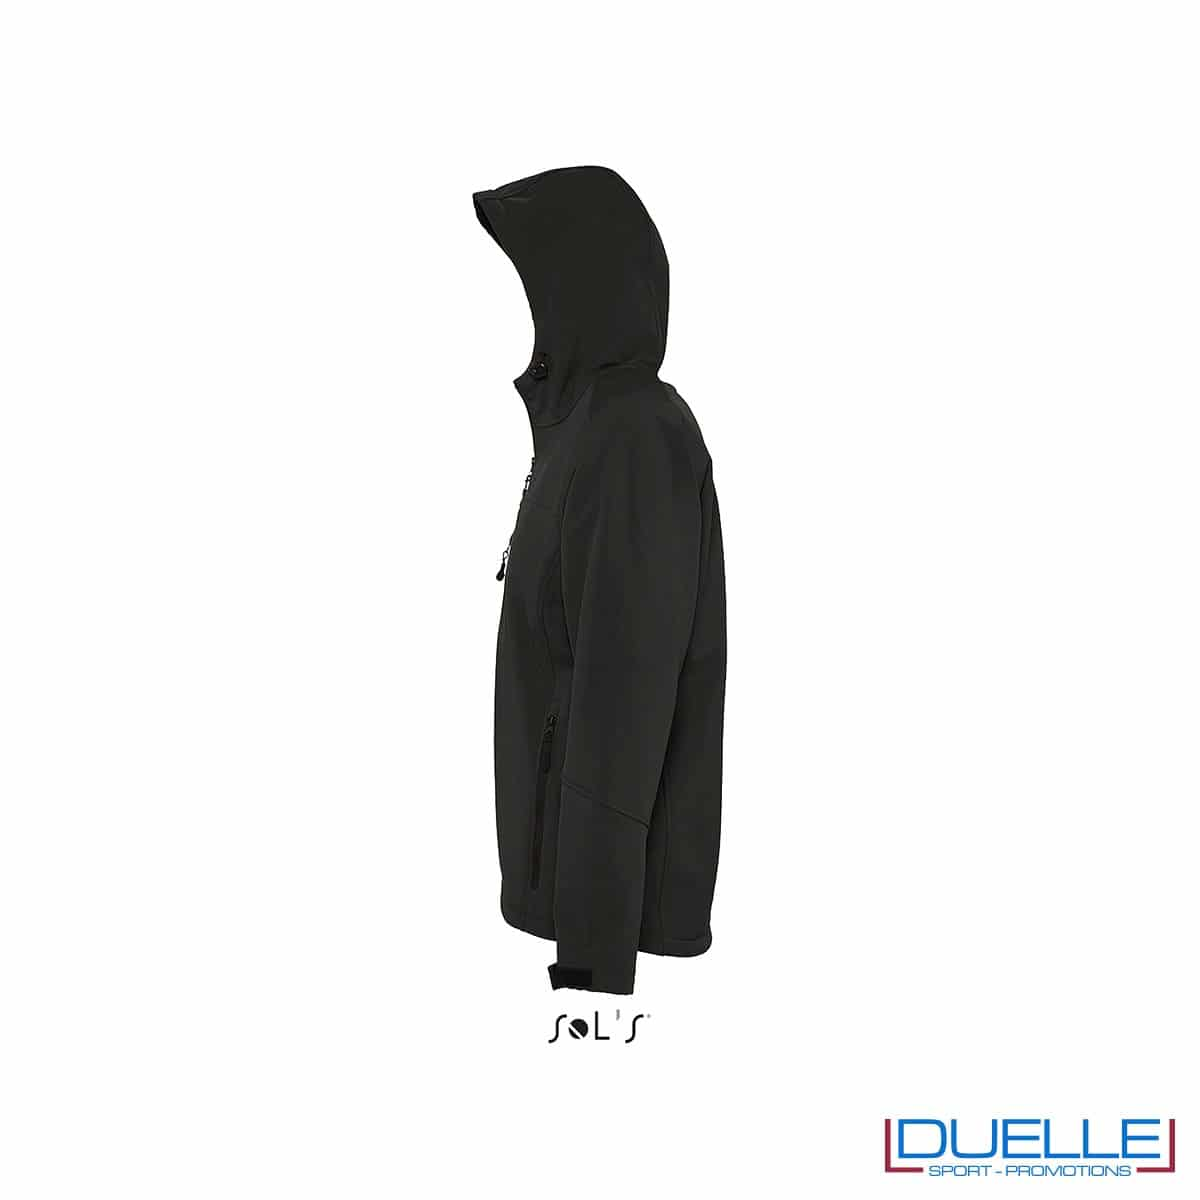 foto laterale di giacca softshell personalizzata in colore nero, foto laterale di giubbotti softshell personalizzati